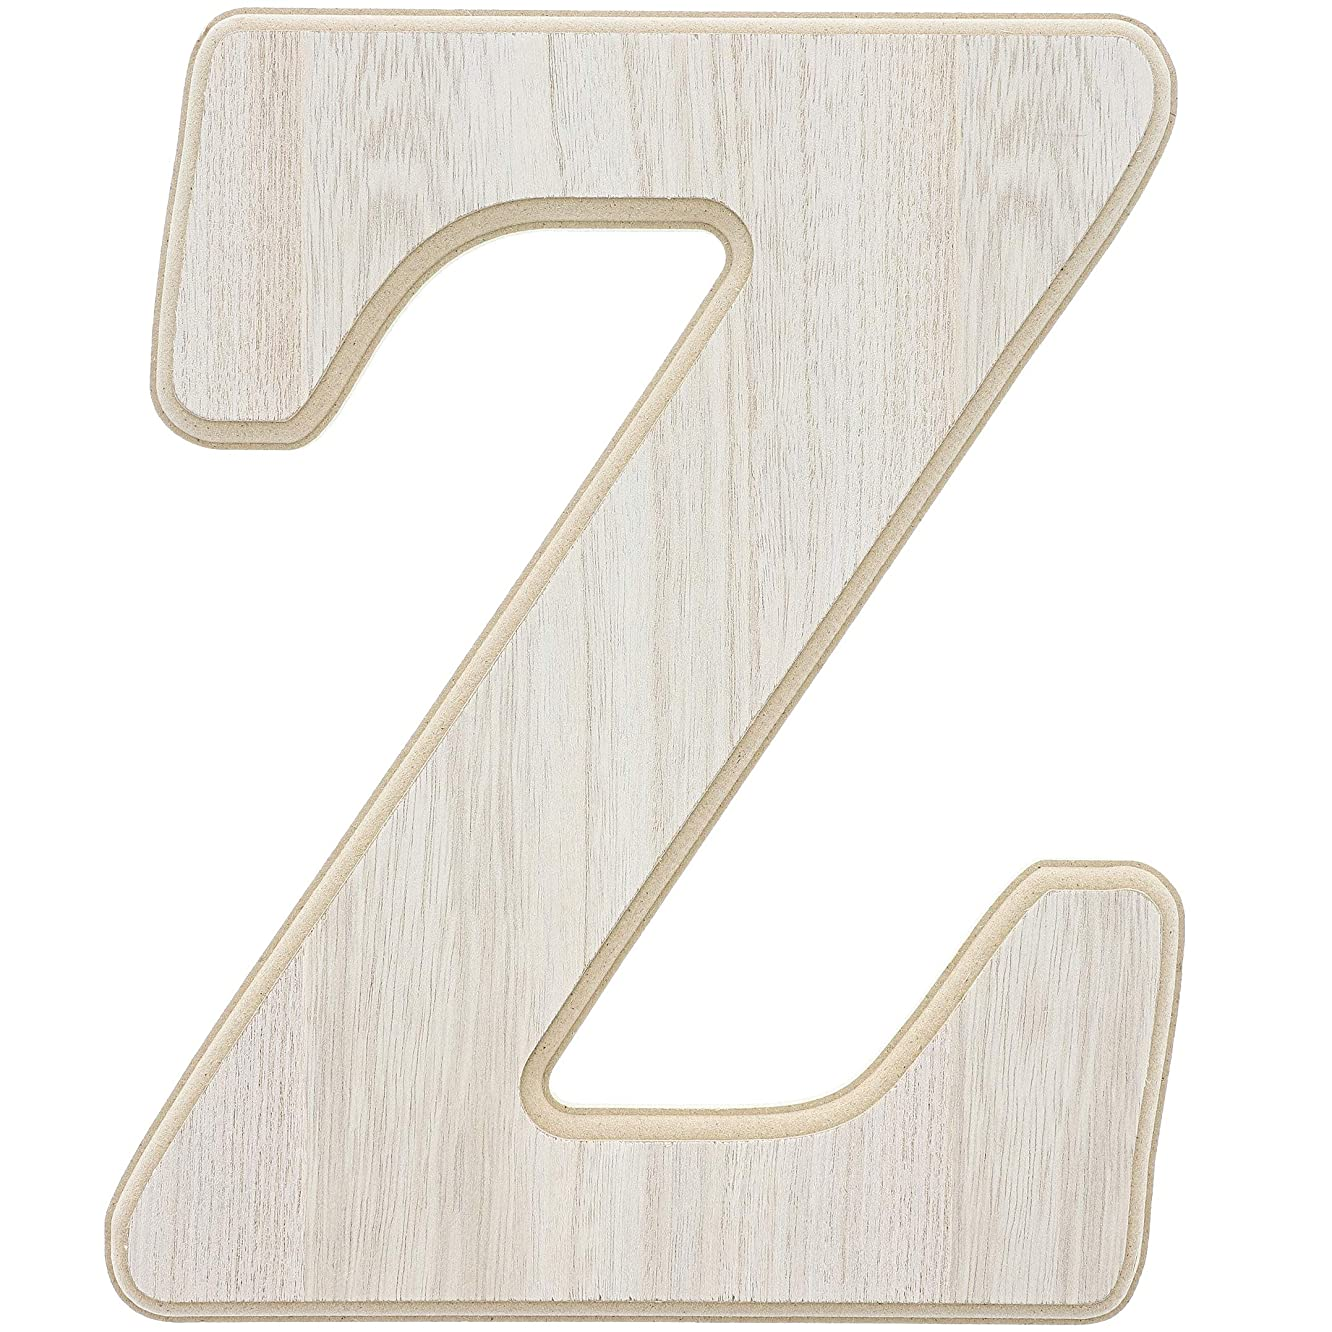 Unfinished Wood Letter Z Cutout for DIY Painting, Crafts, and Wall Decor,10 x .5 x 12 Inches